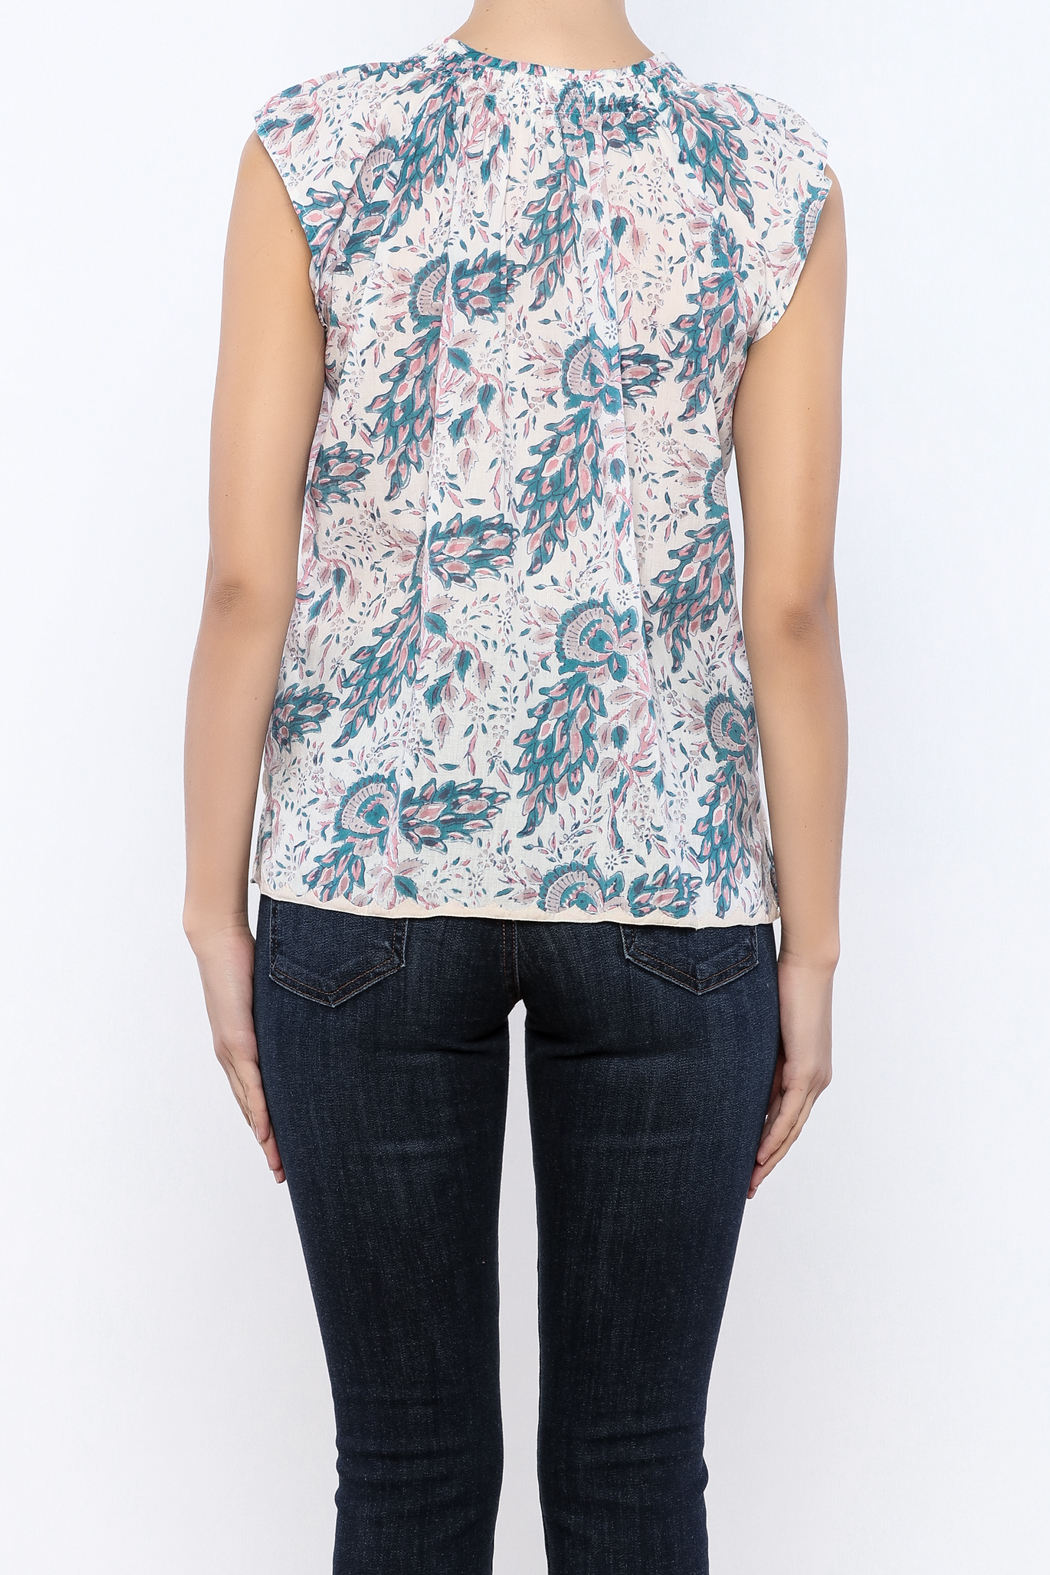 Kerry Cassill Short Sleeve Henley Top - Back Cropped Image